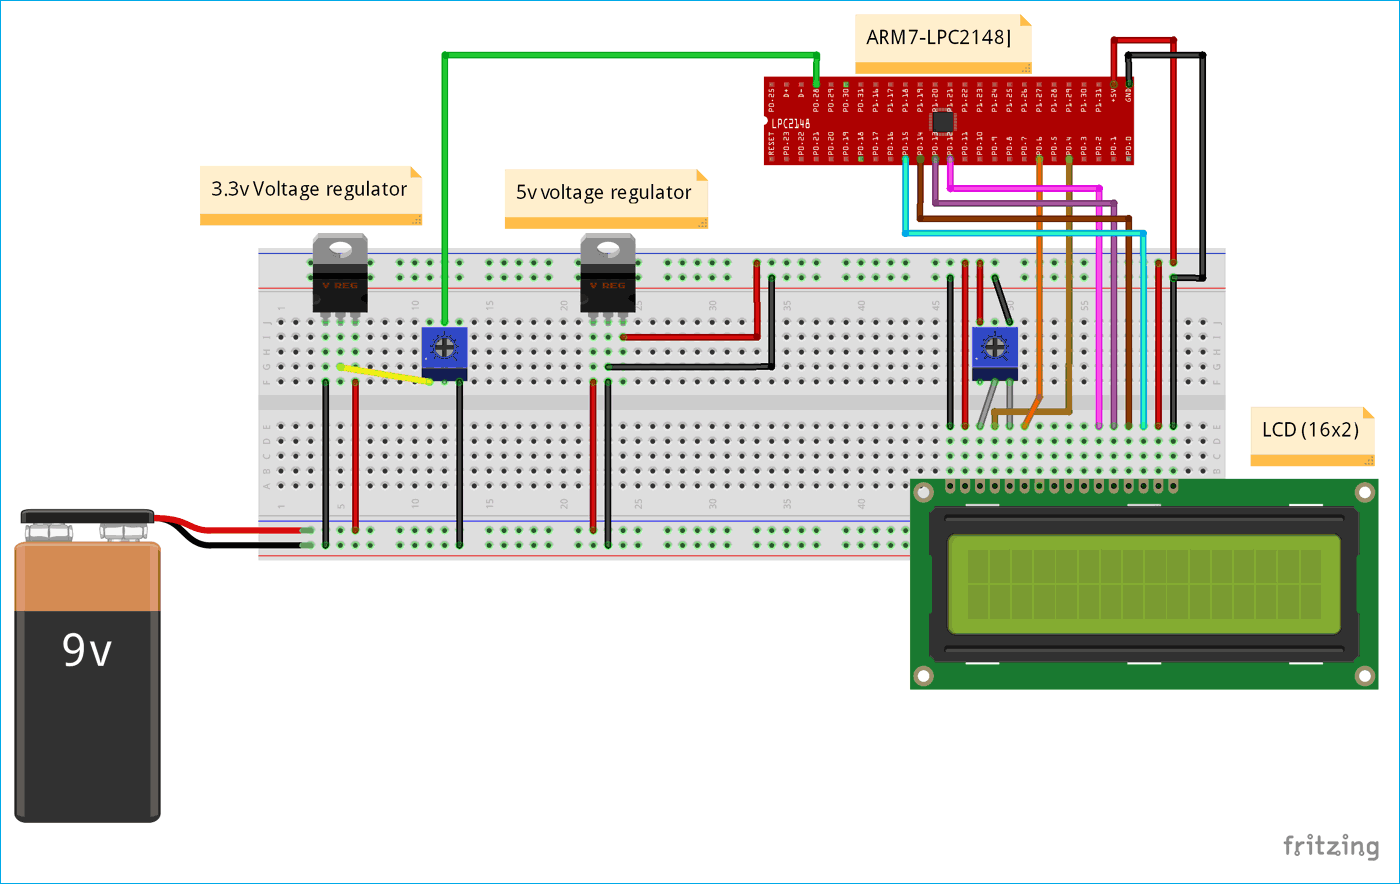 Circuit Diagram for ADC between LCD and ARM-LPC2148